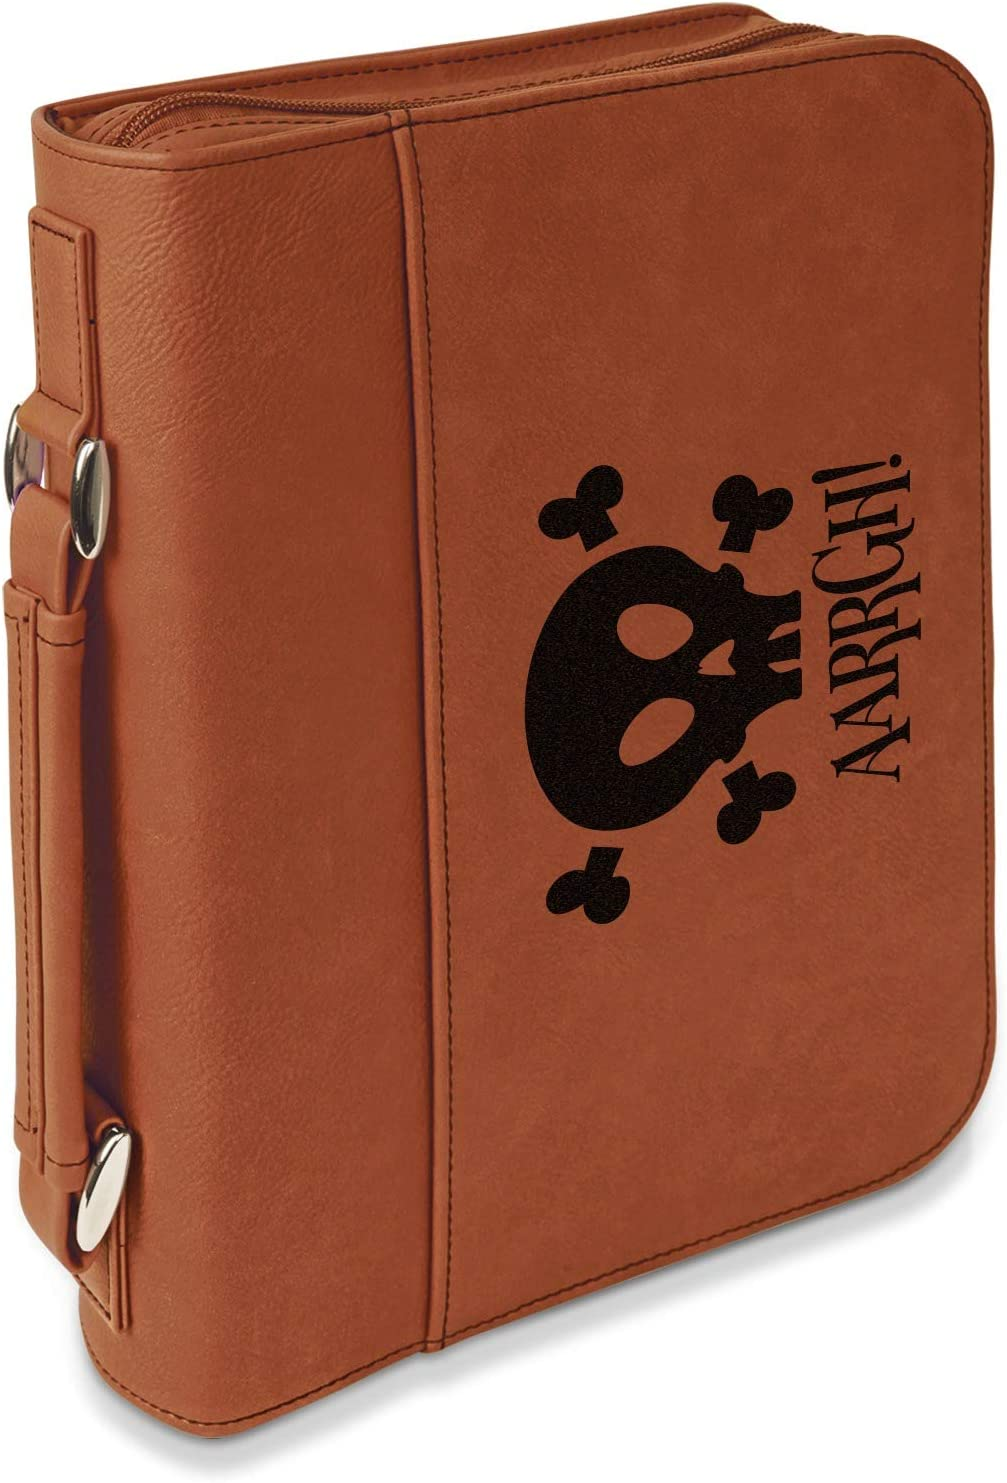 Pirate Leatherette Bible Cover with Max 74% OFF Zipper Handle Sin Limited price - Large-